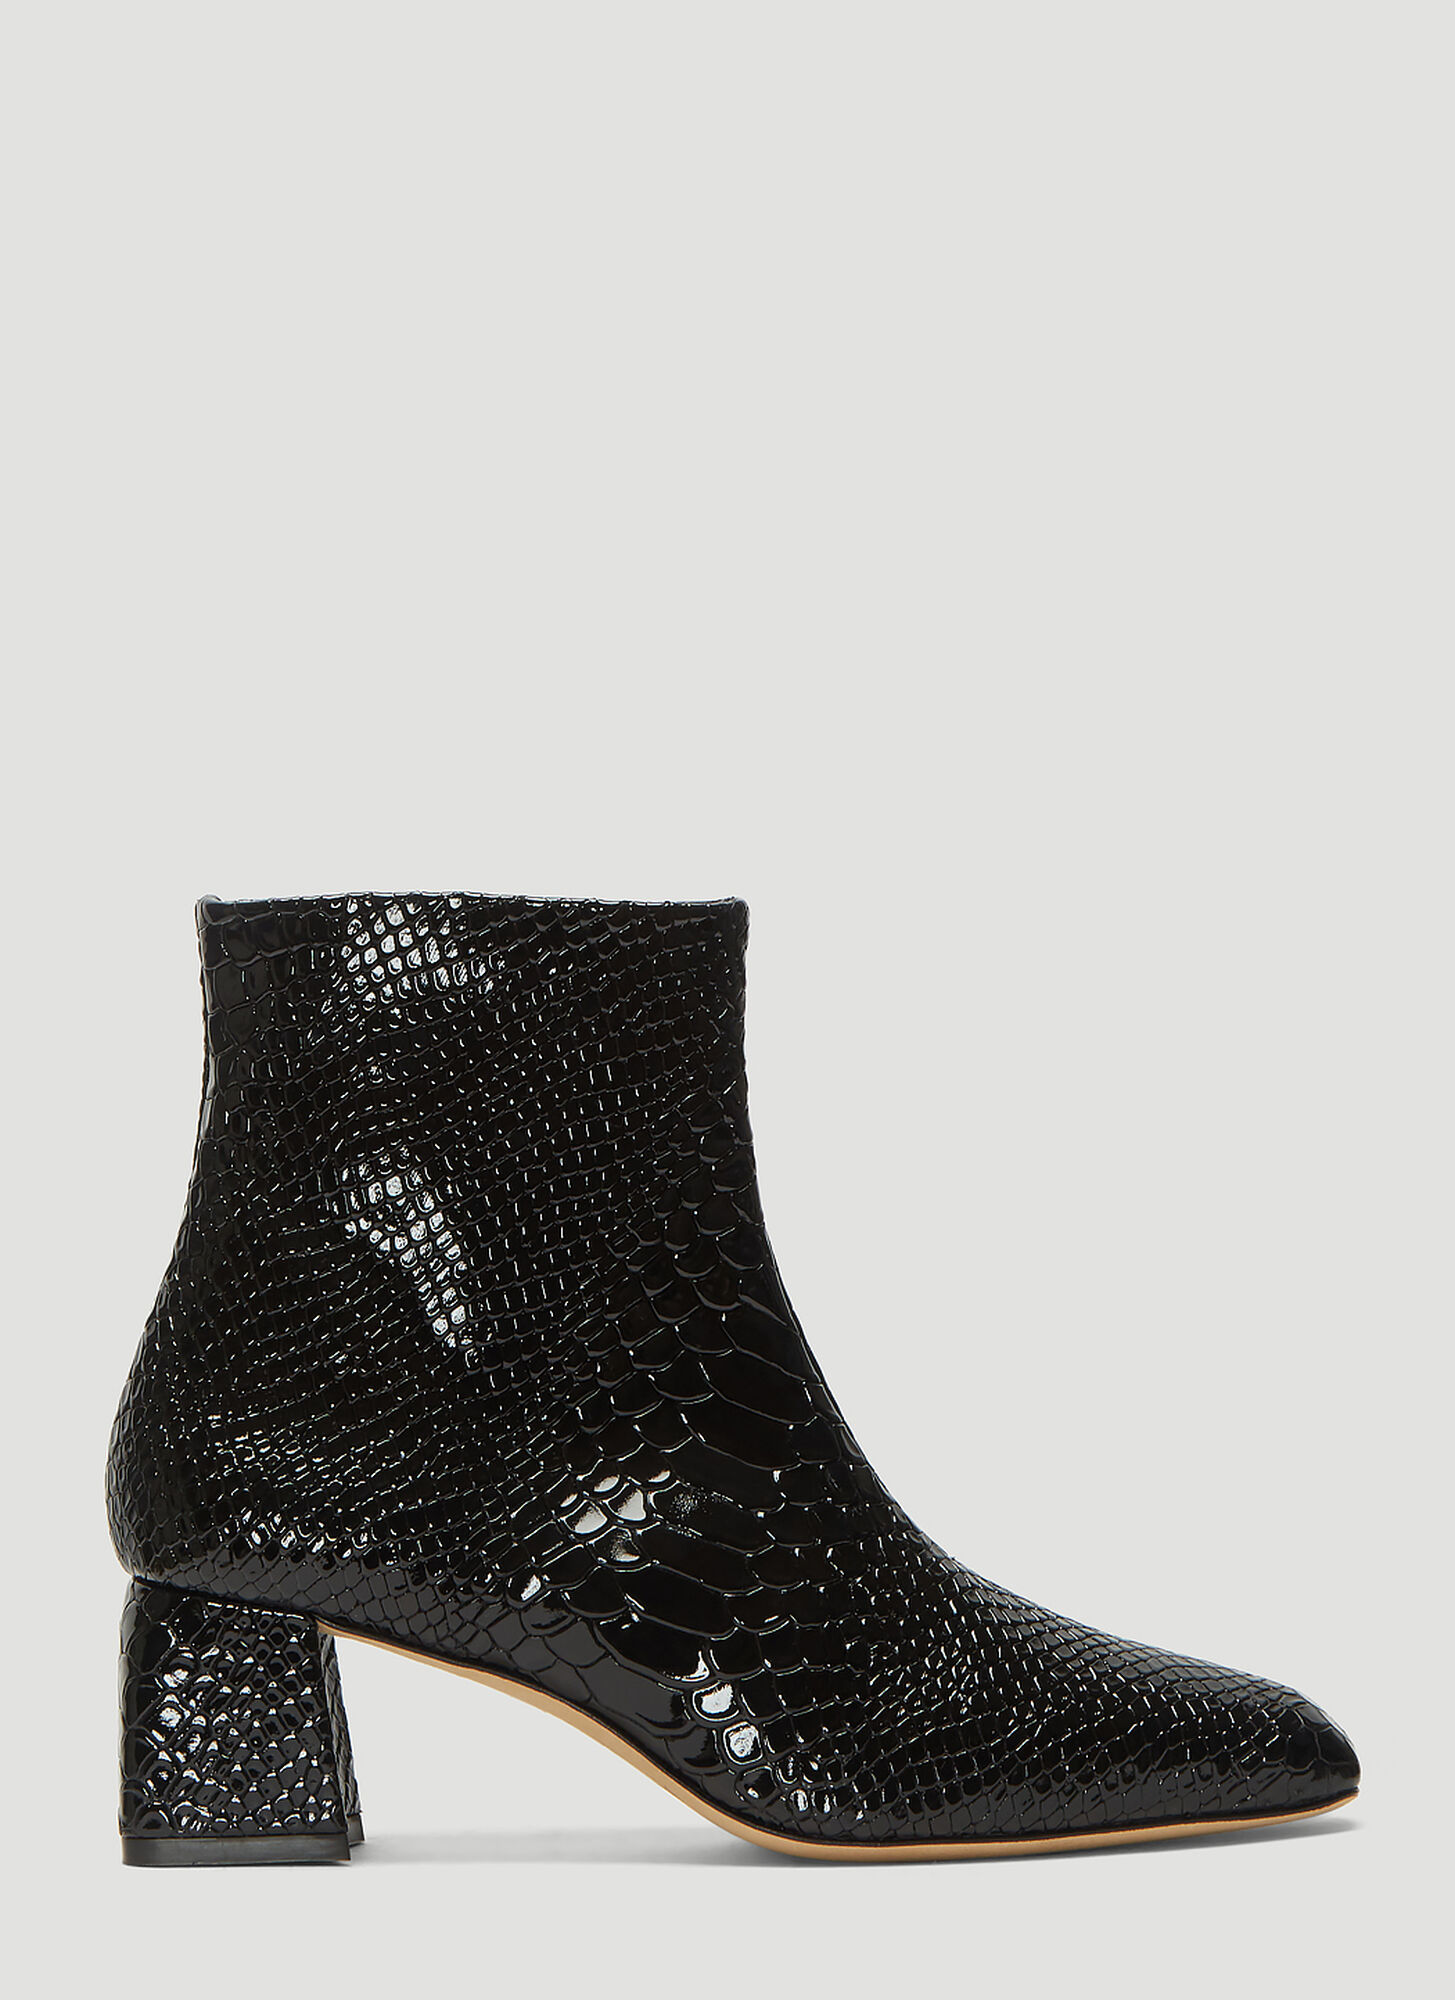 Kalda Marti Boots in Black